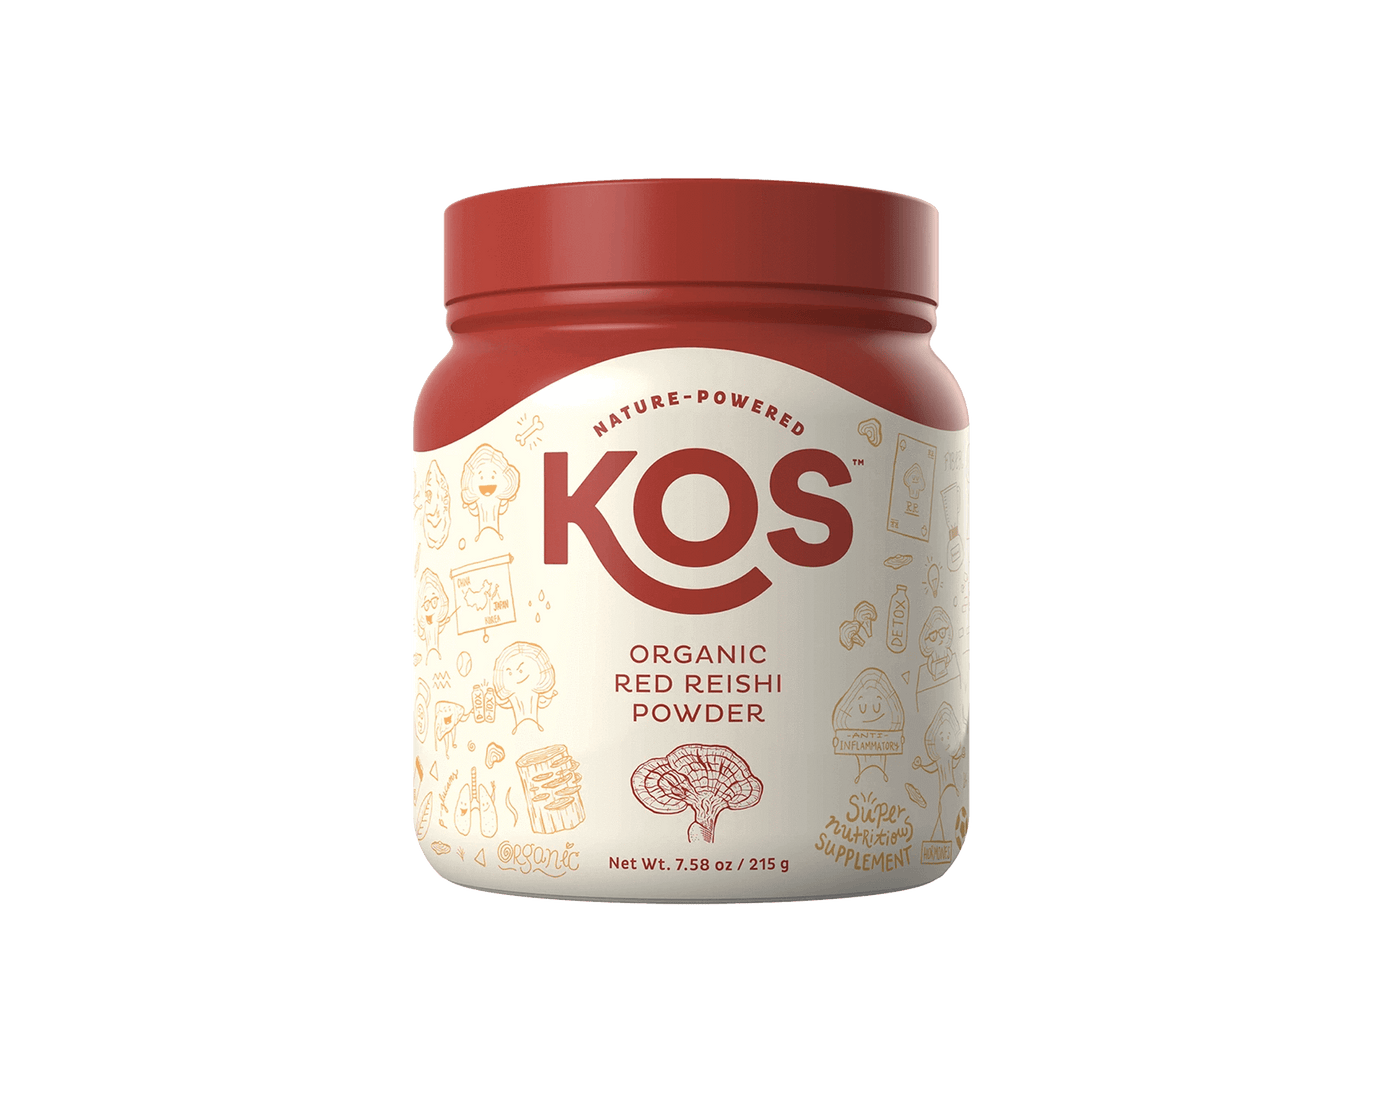 KOS Organic Red Reishi Powder